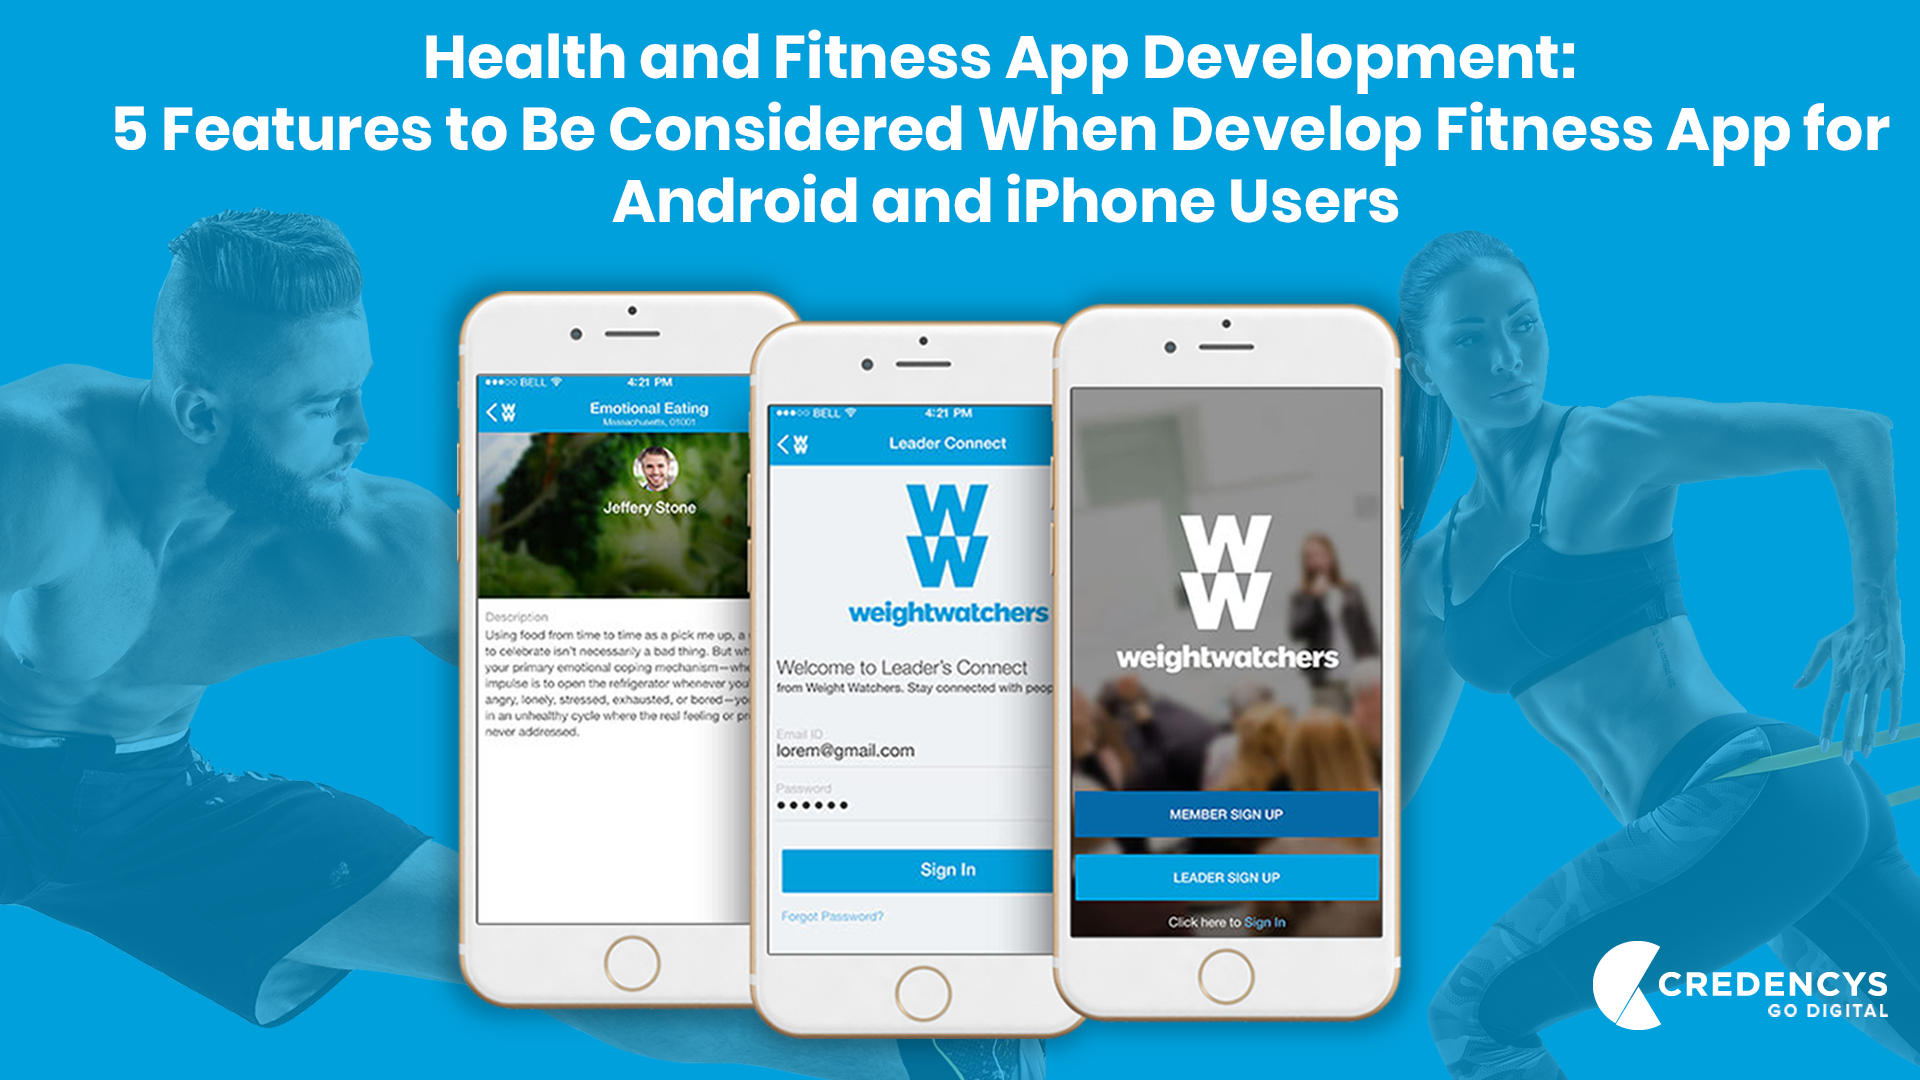 Health and Fitness App Development: 5 Features to Be Considered